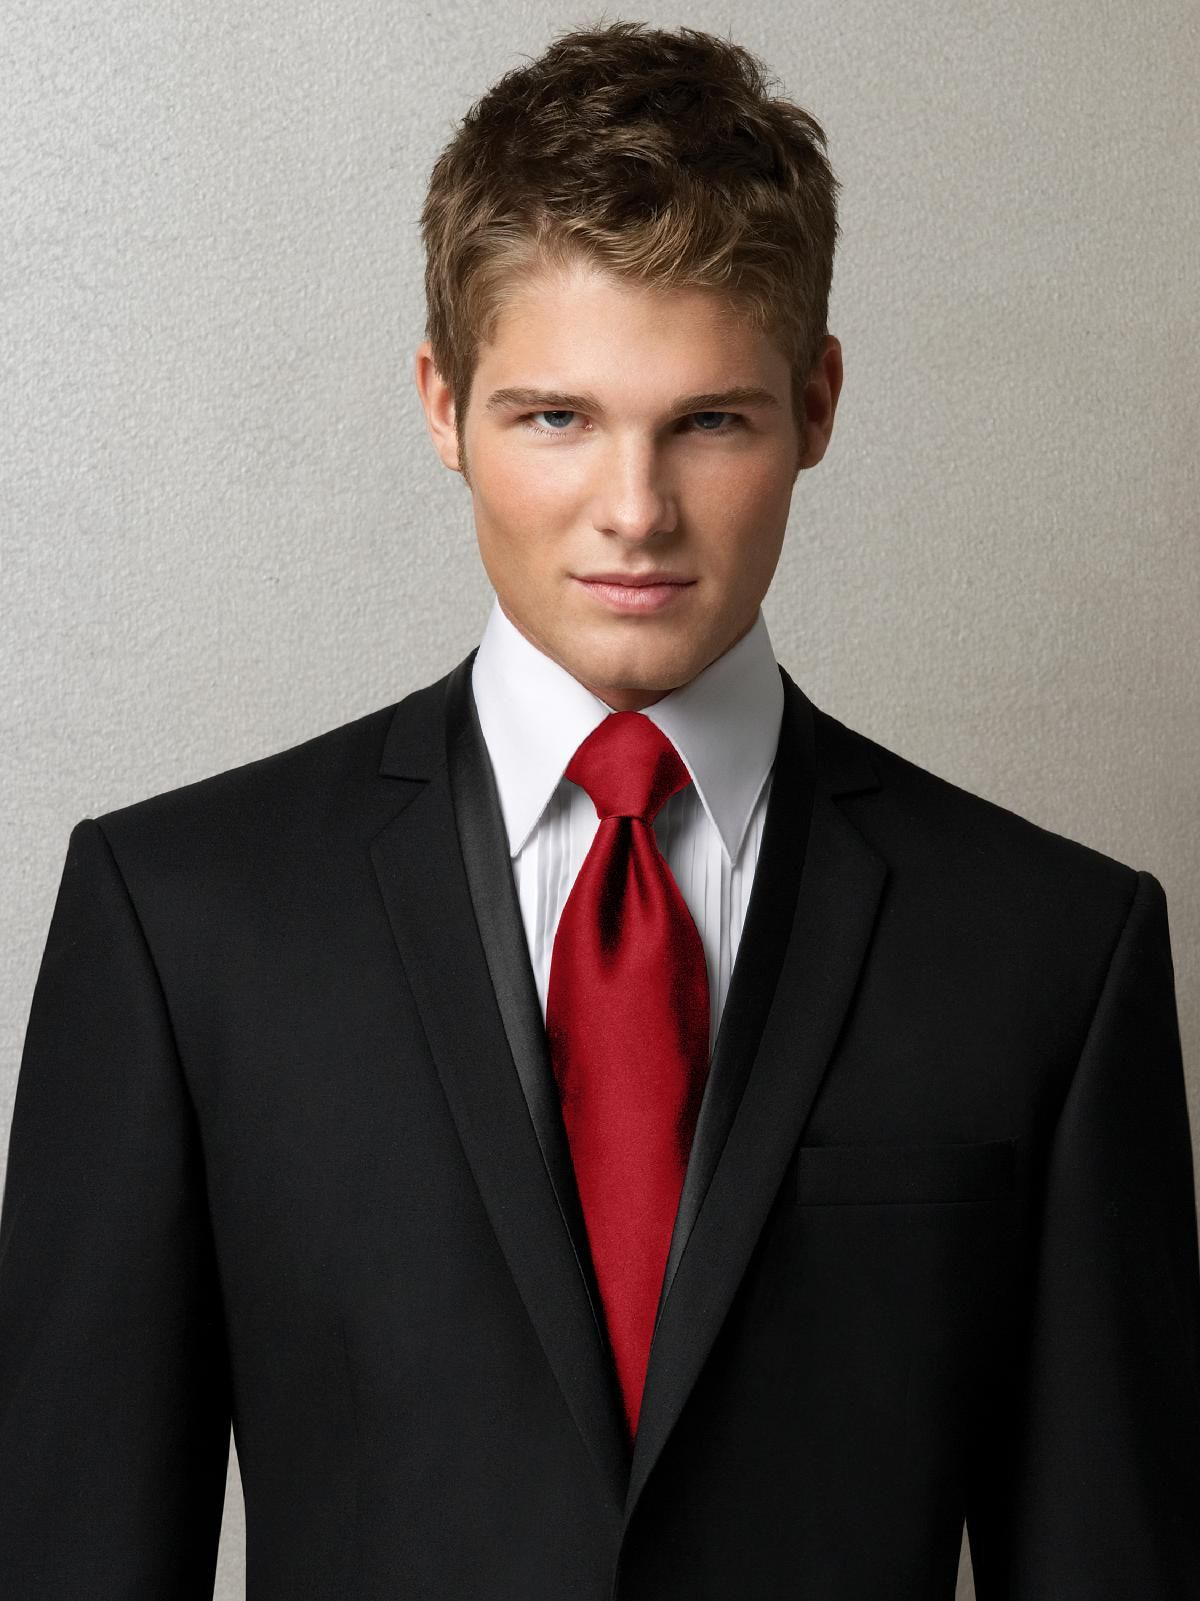 I want the guys to wear that color tie.